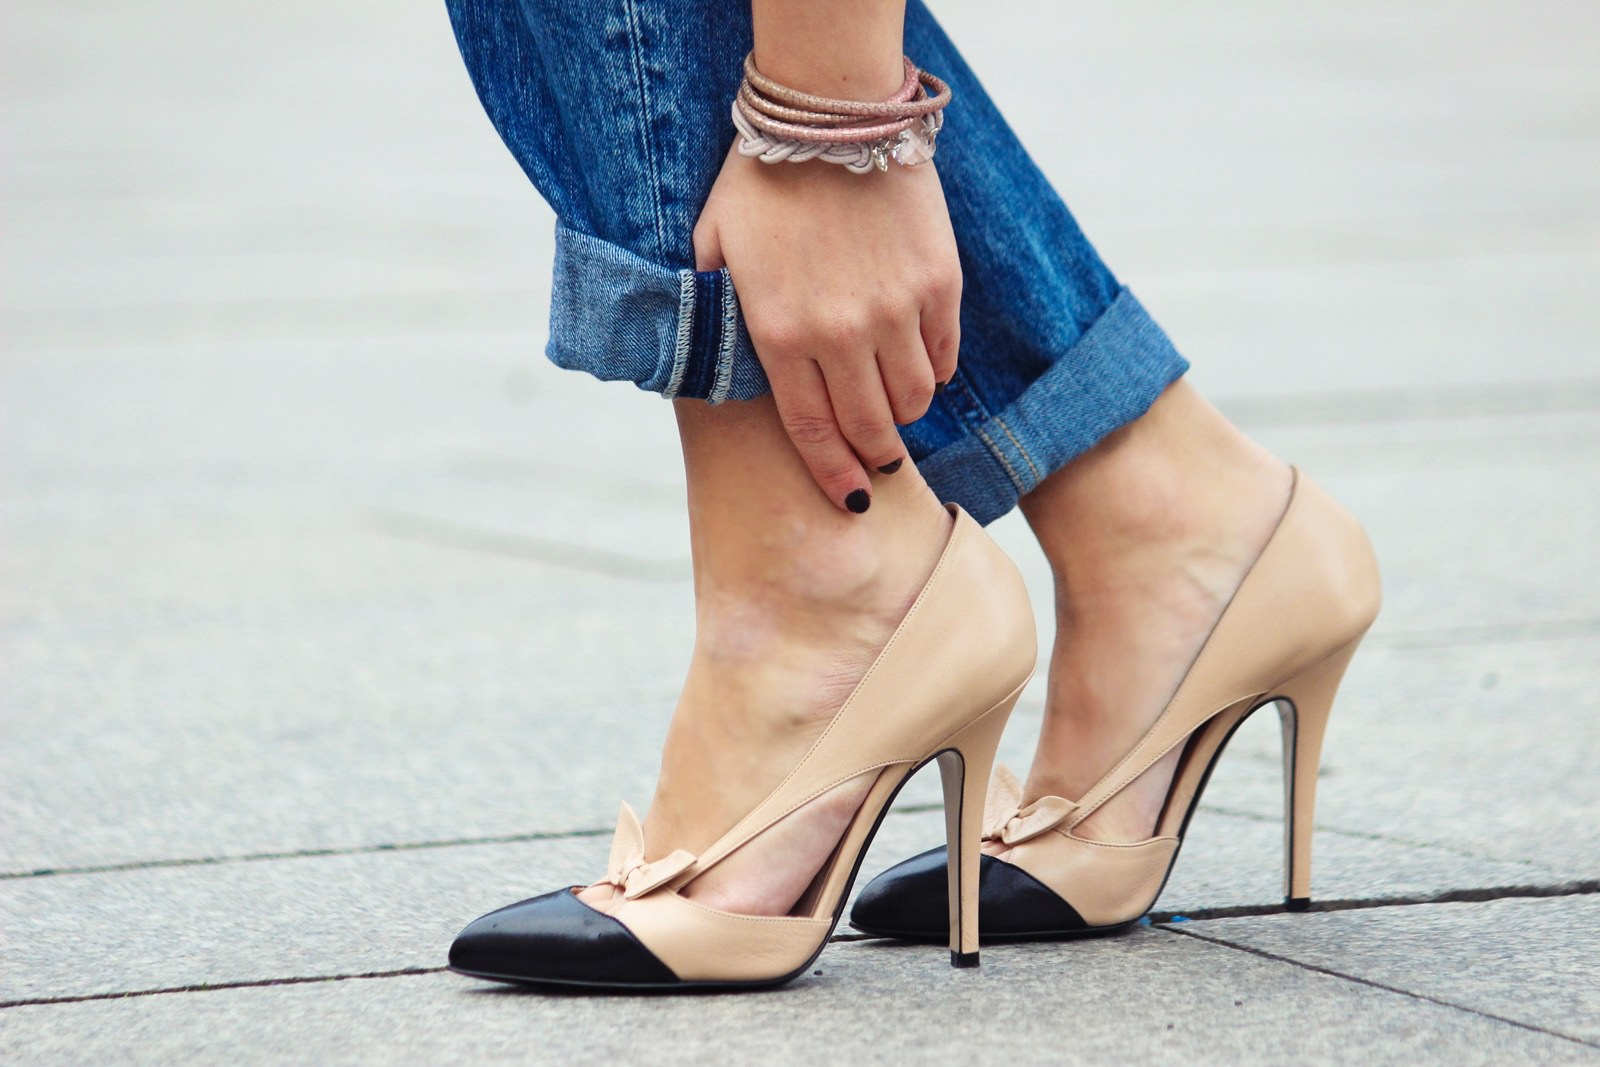 Des Belles Choses Outfit - 10 things why it's great to be a woman Boyfriend Style with pumps 8